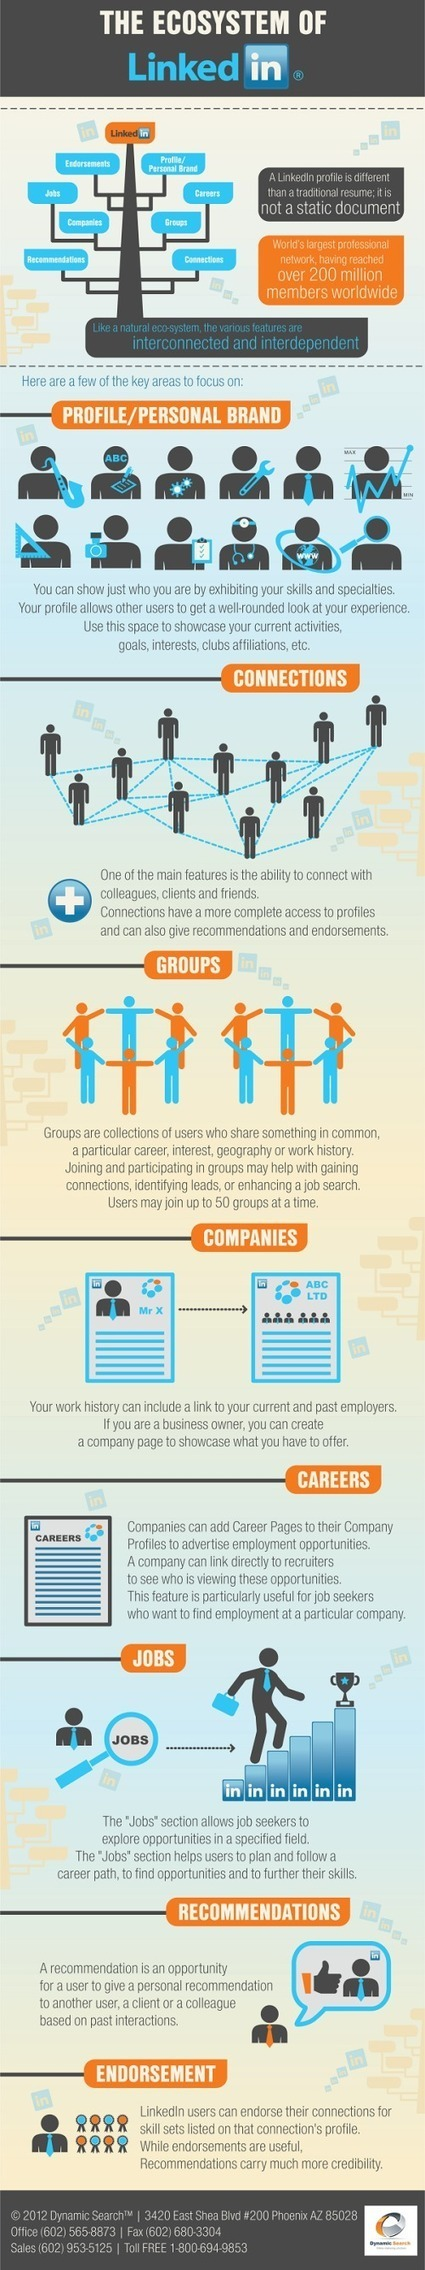 The Ecosystem of Linkedin - Blog About Infographics and Data Visualization - Cool Infographics | Learning with Infographs | Scoop.it